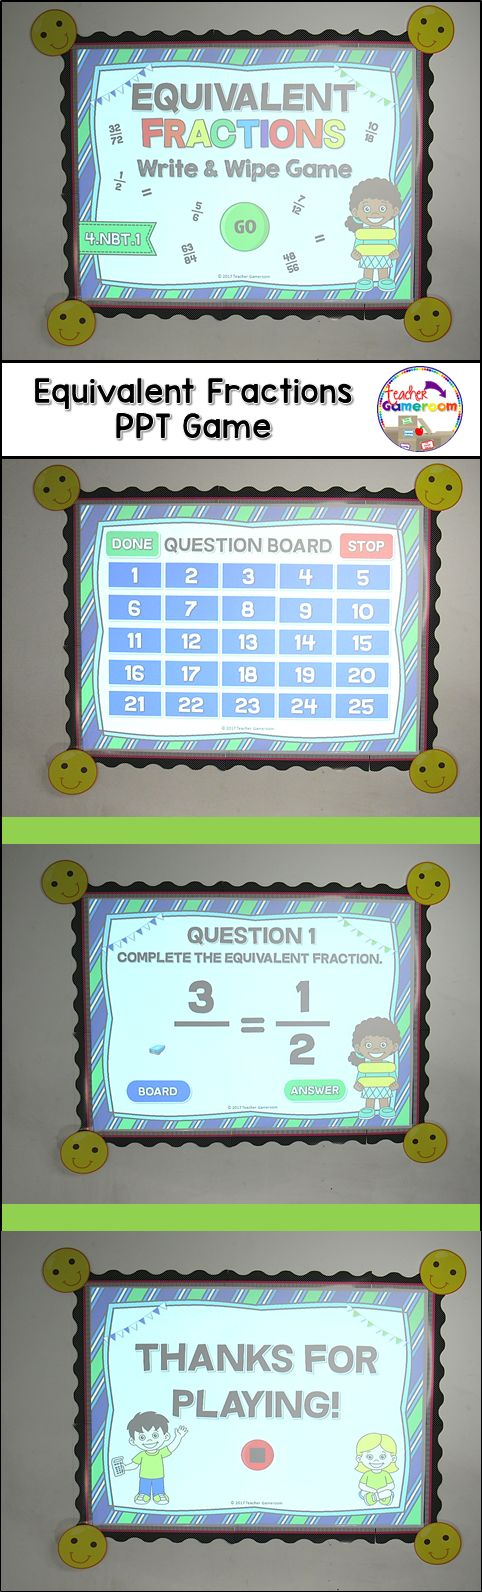 Practice equivalent fractions with this fun powerpoint game for smartboards and interactive boards. CCSS aligned.